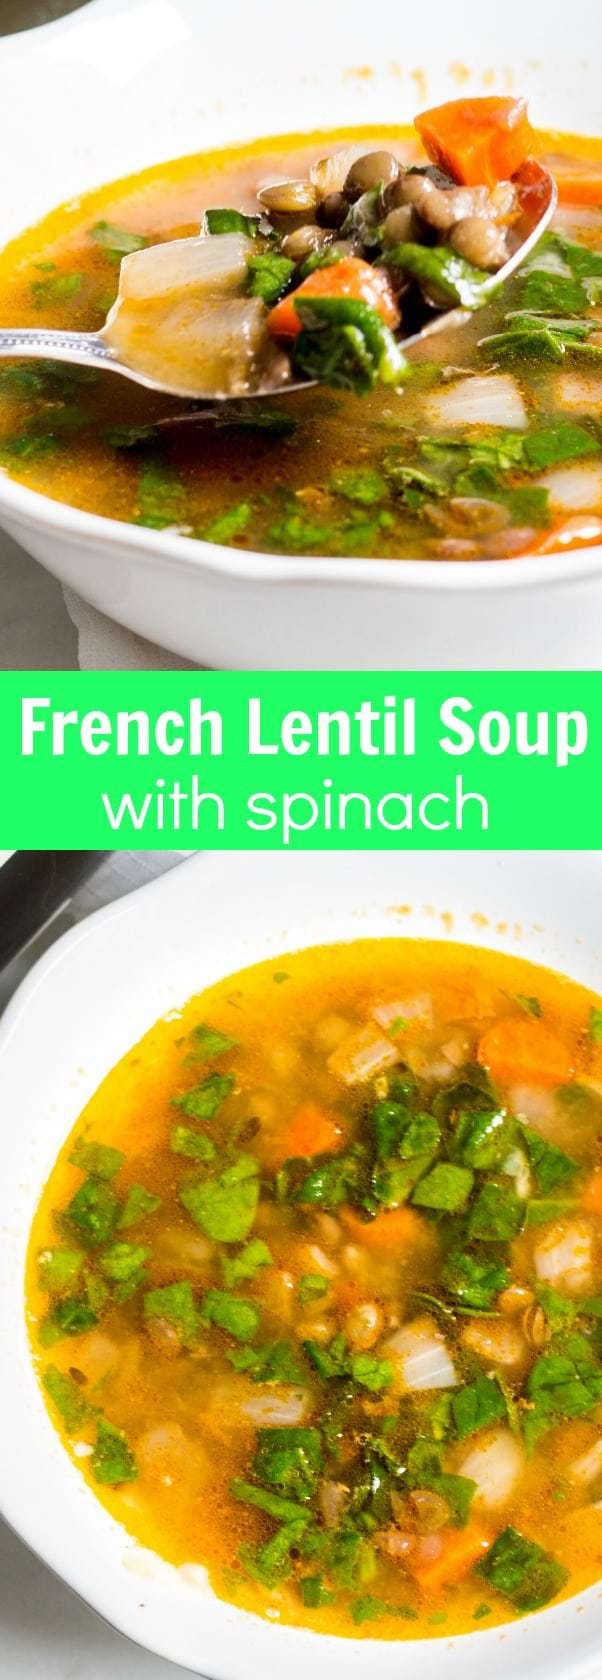 French Lentil Soup with Spinach: a comforting French soup that's hearty and delicious! Recipe via MonPetitFour.com